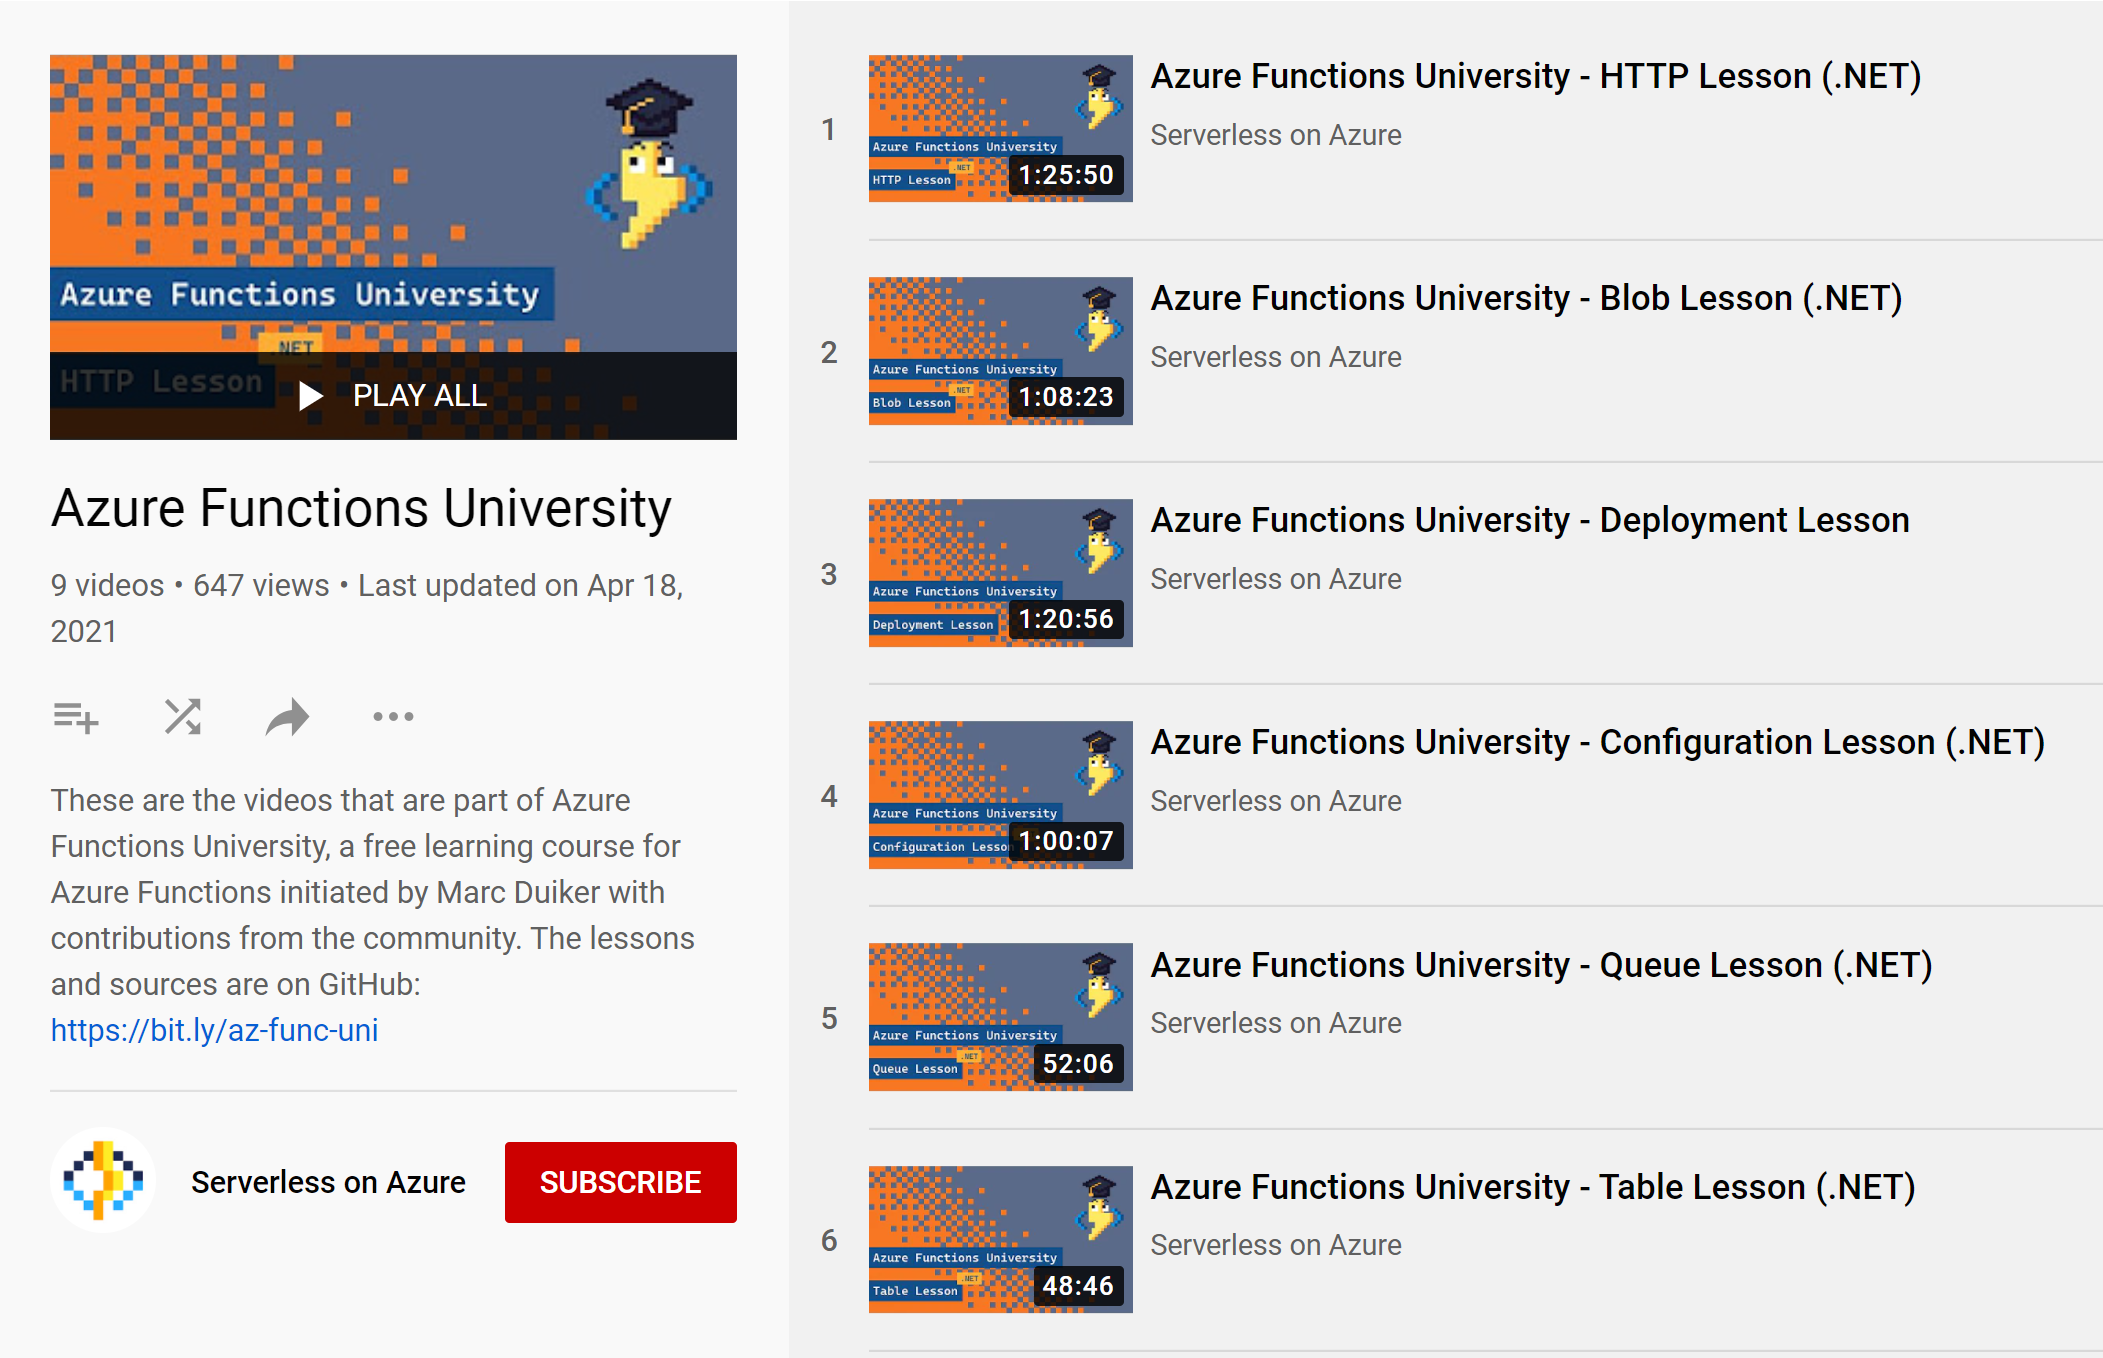 Screenshot of the Azure Functions University playlist on YouTube